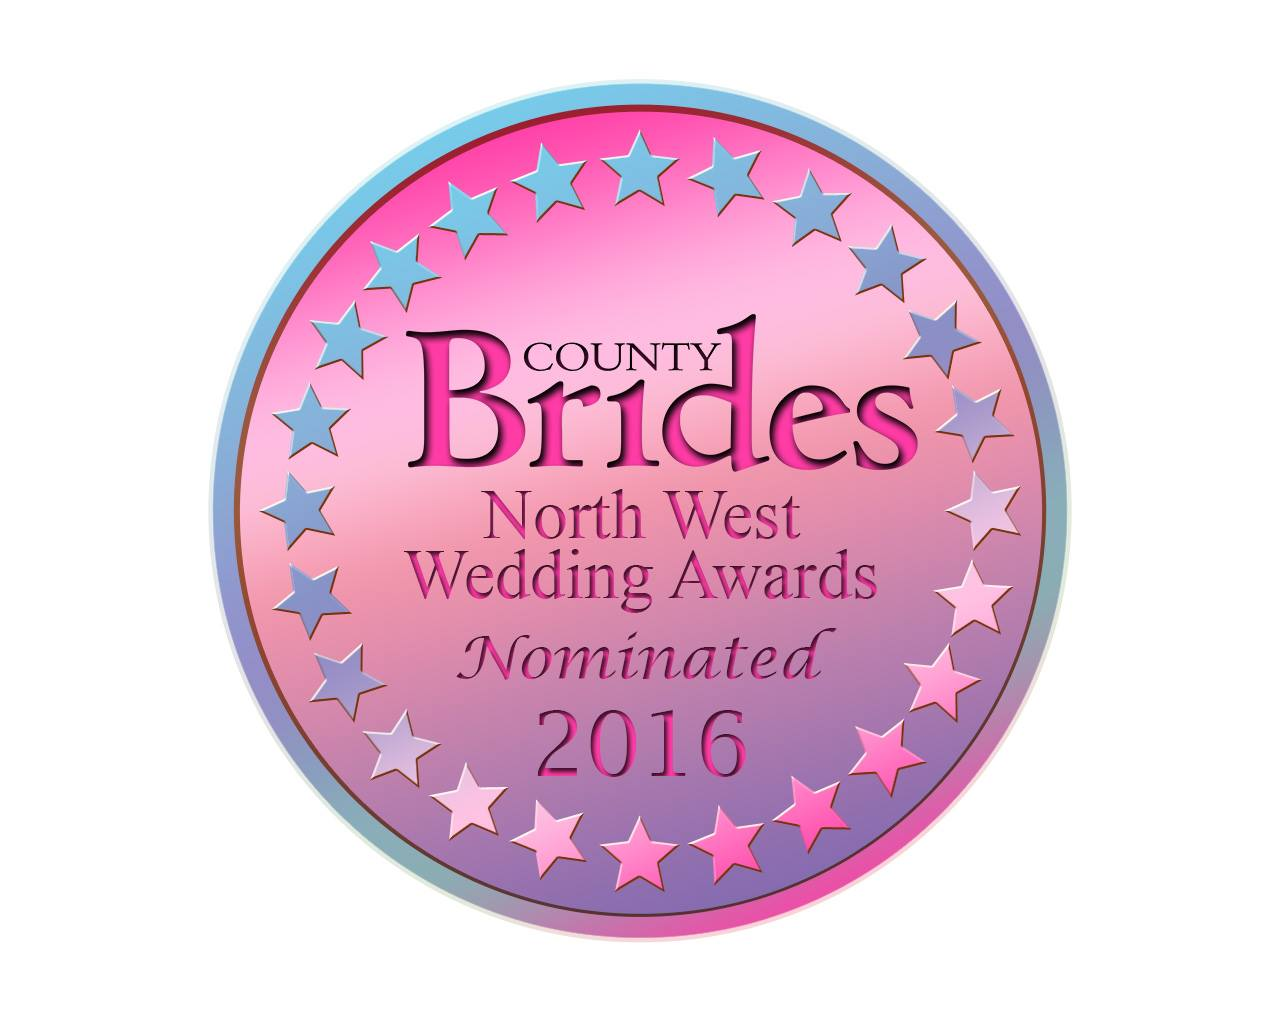 Country Brides North-West Wedding Awards Nominated 2016